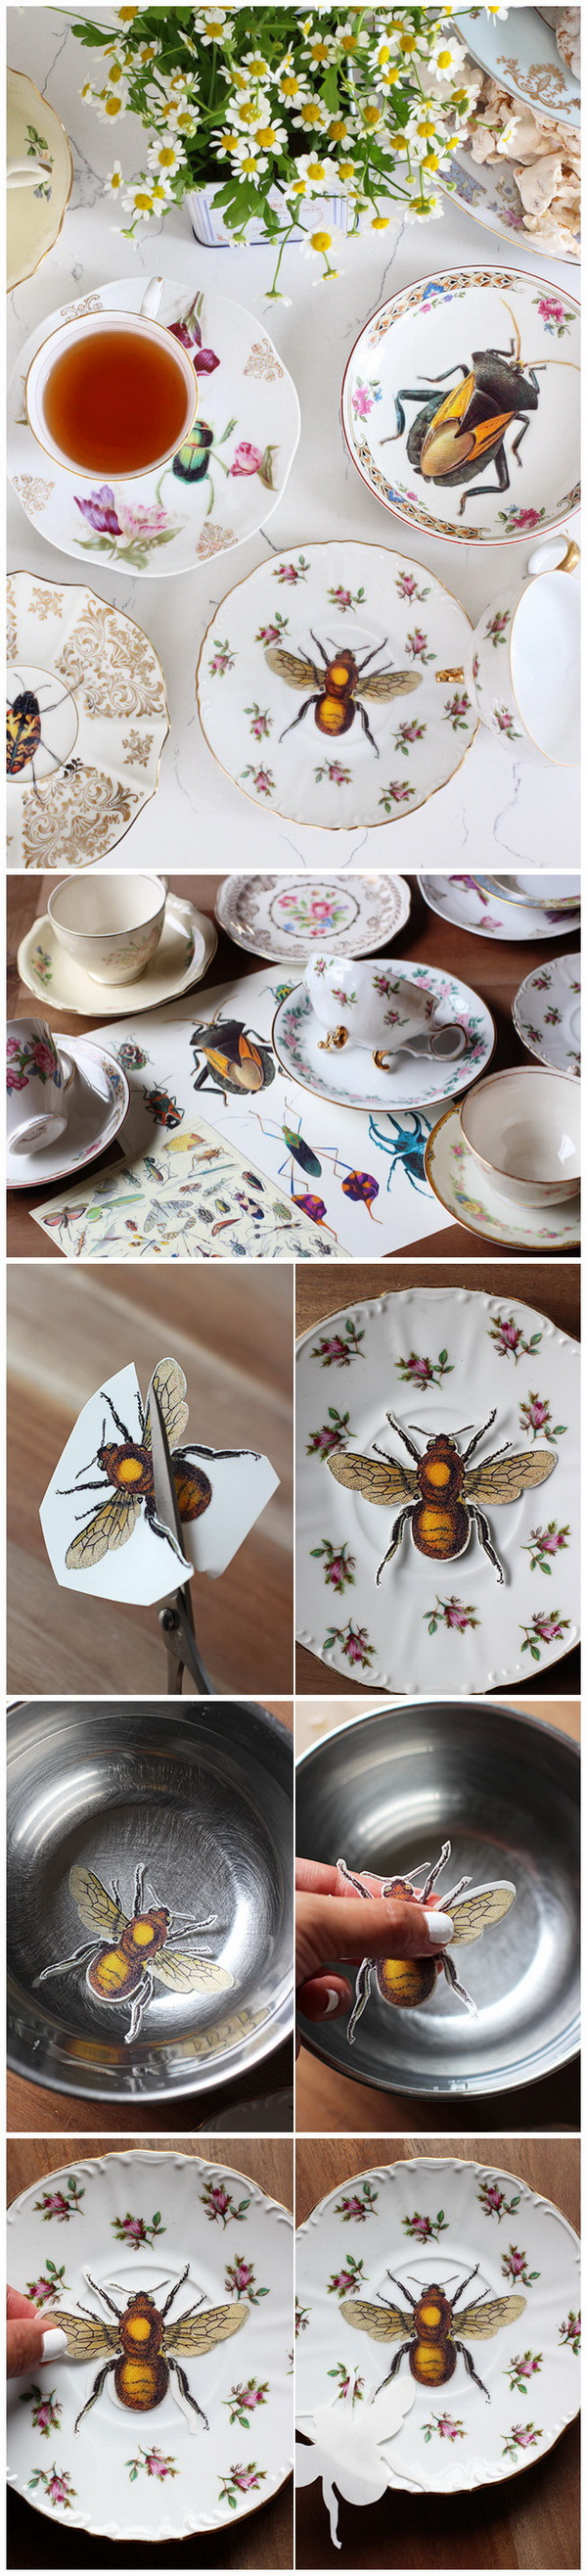 DIY Upcycled Vintage Plates with Image Transfer.